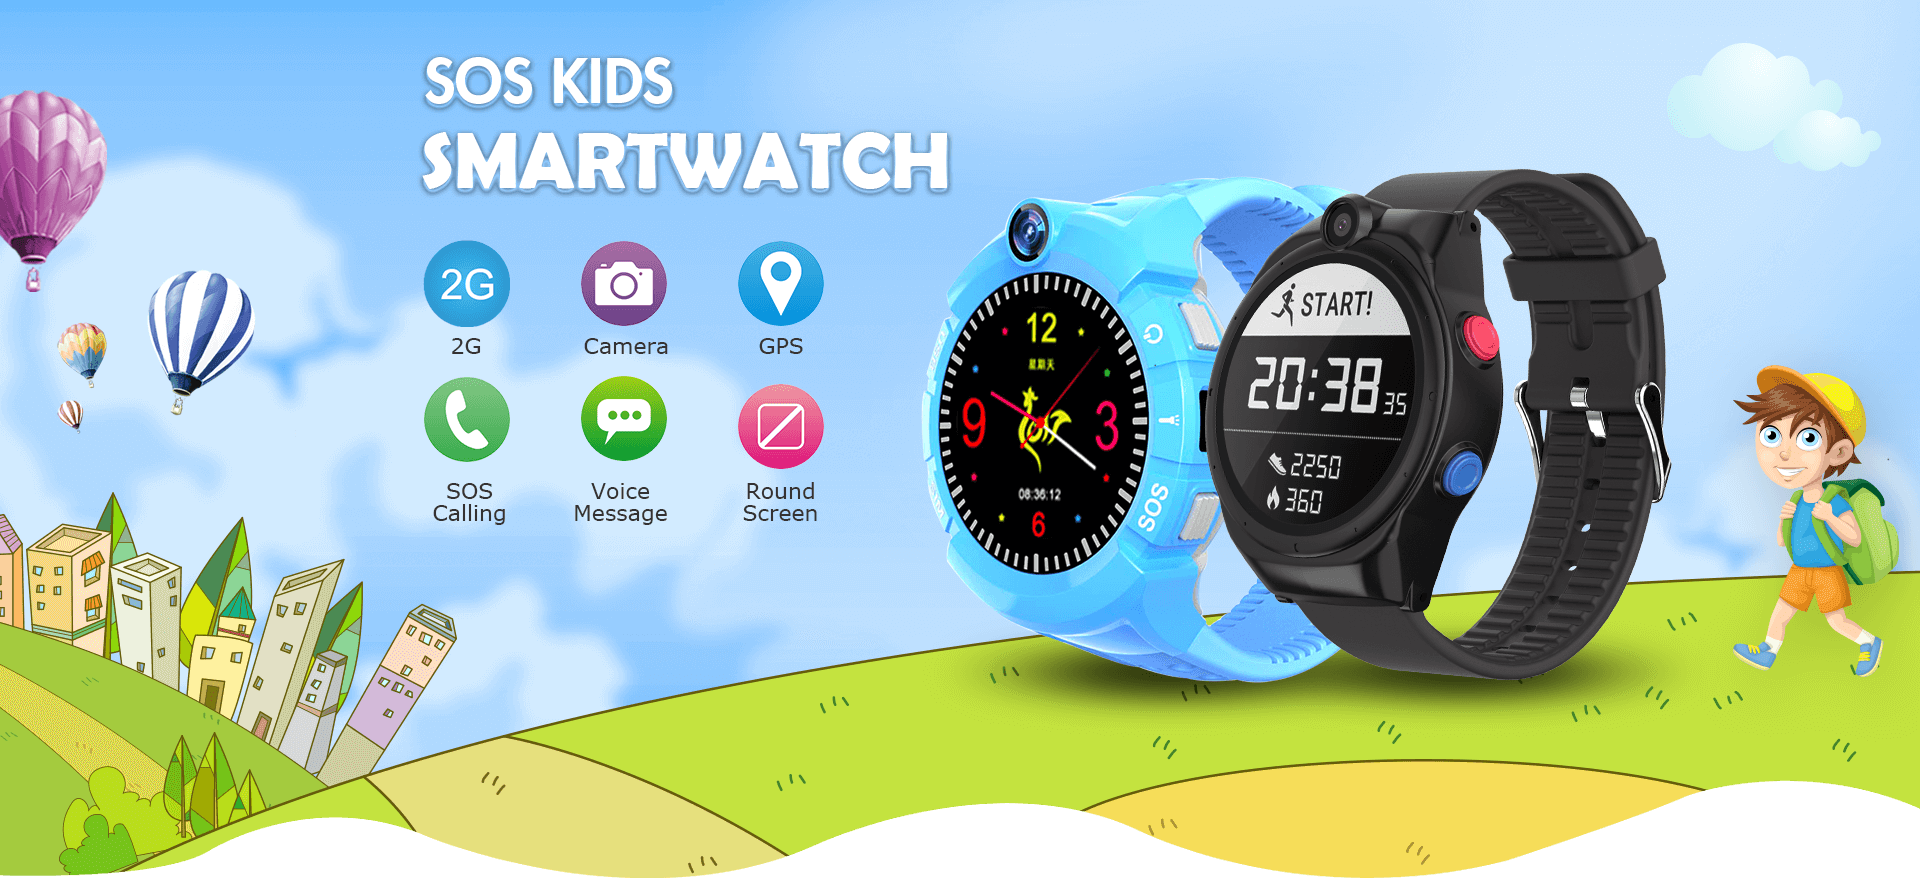 SOS Kid Smartwatch